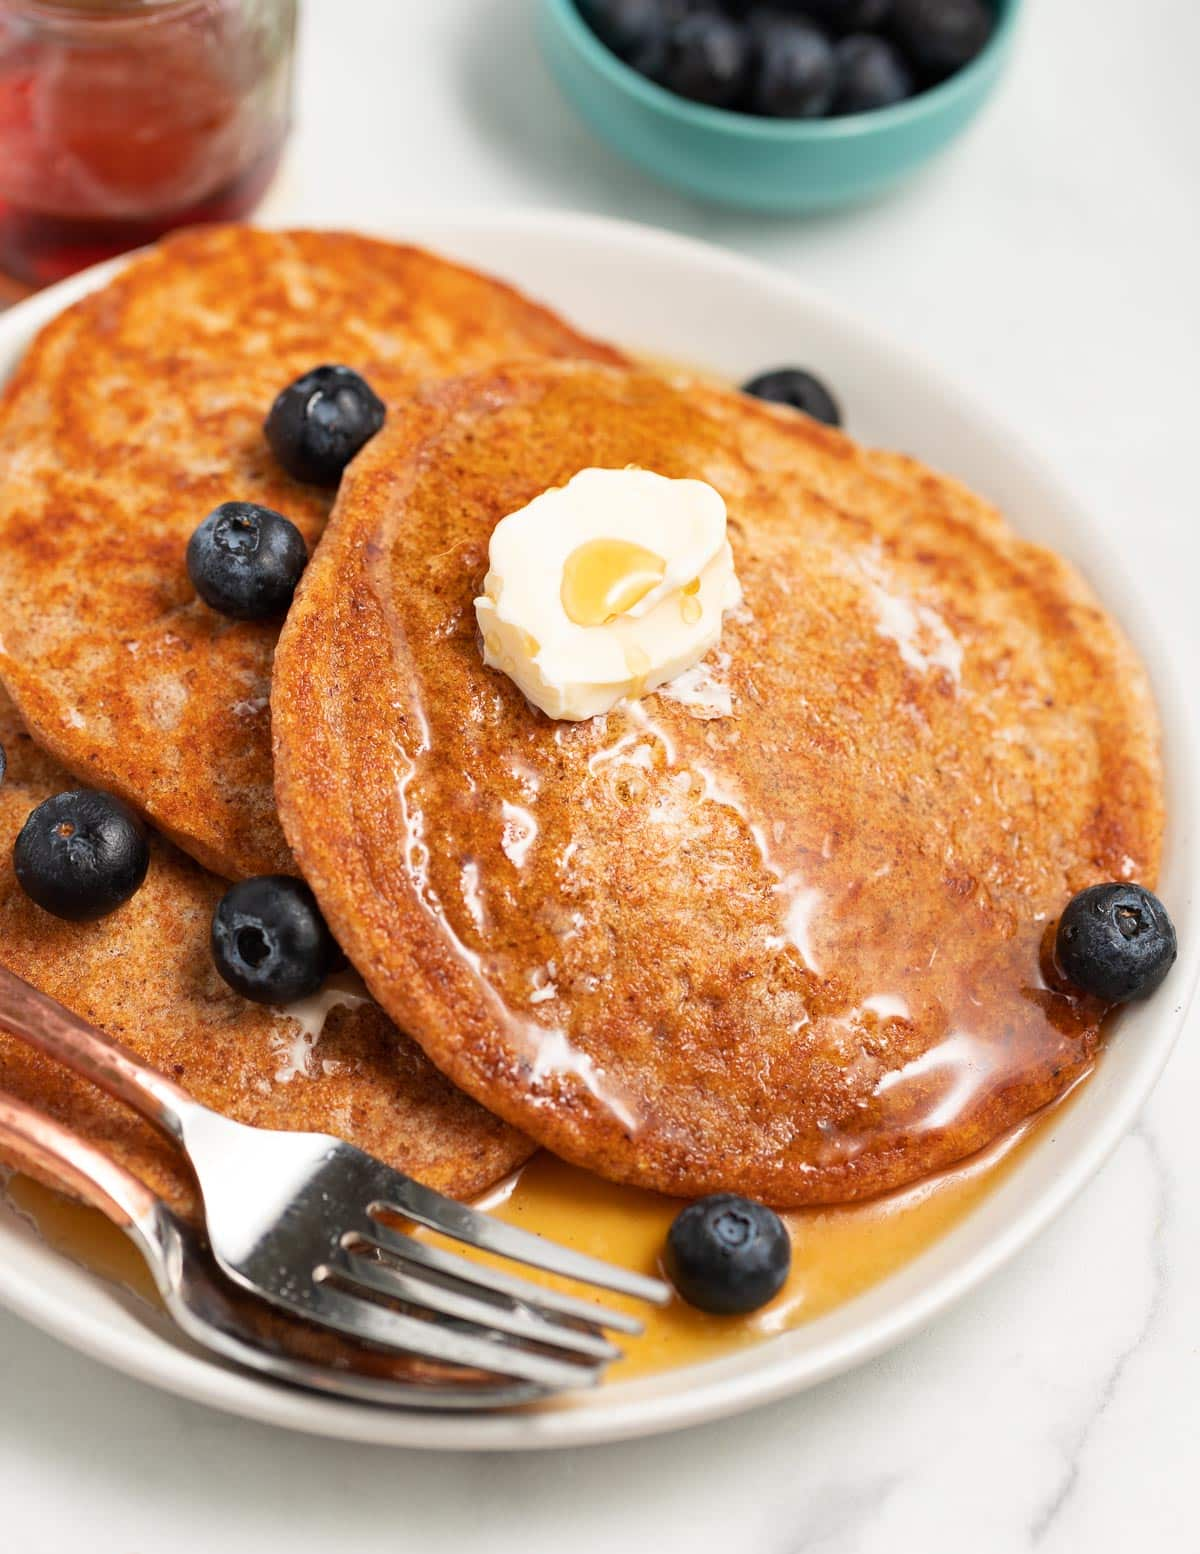 gingerbread pancakes on a plate with blueberries